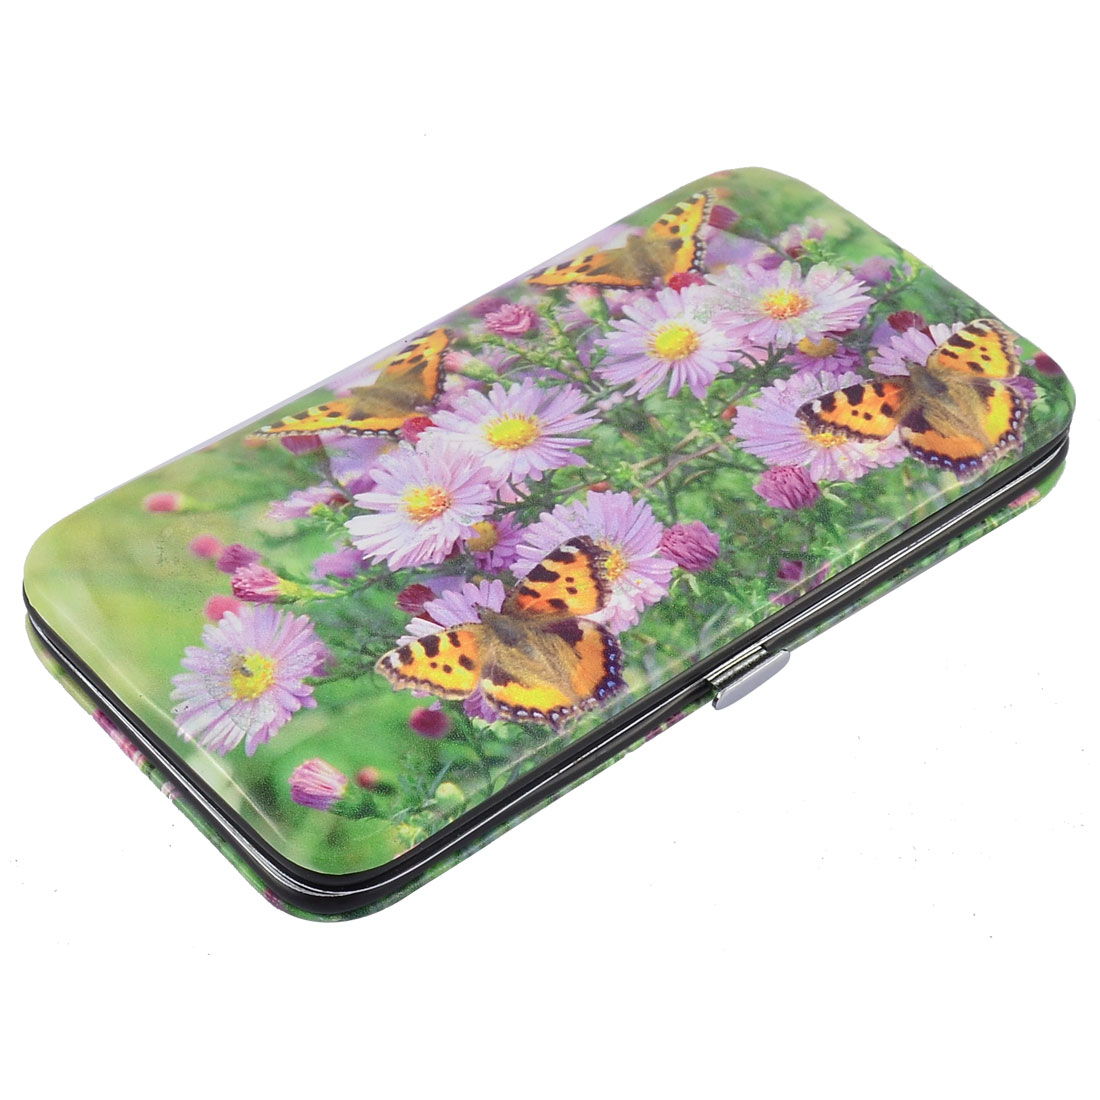 14 in 1 Flower Pattern Case Manicure Nail Clipper Cuticle Grooming Kit Set Green